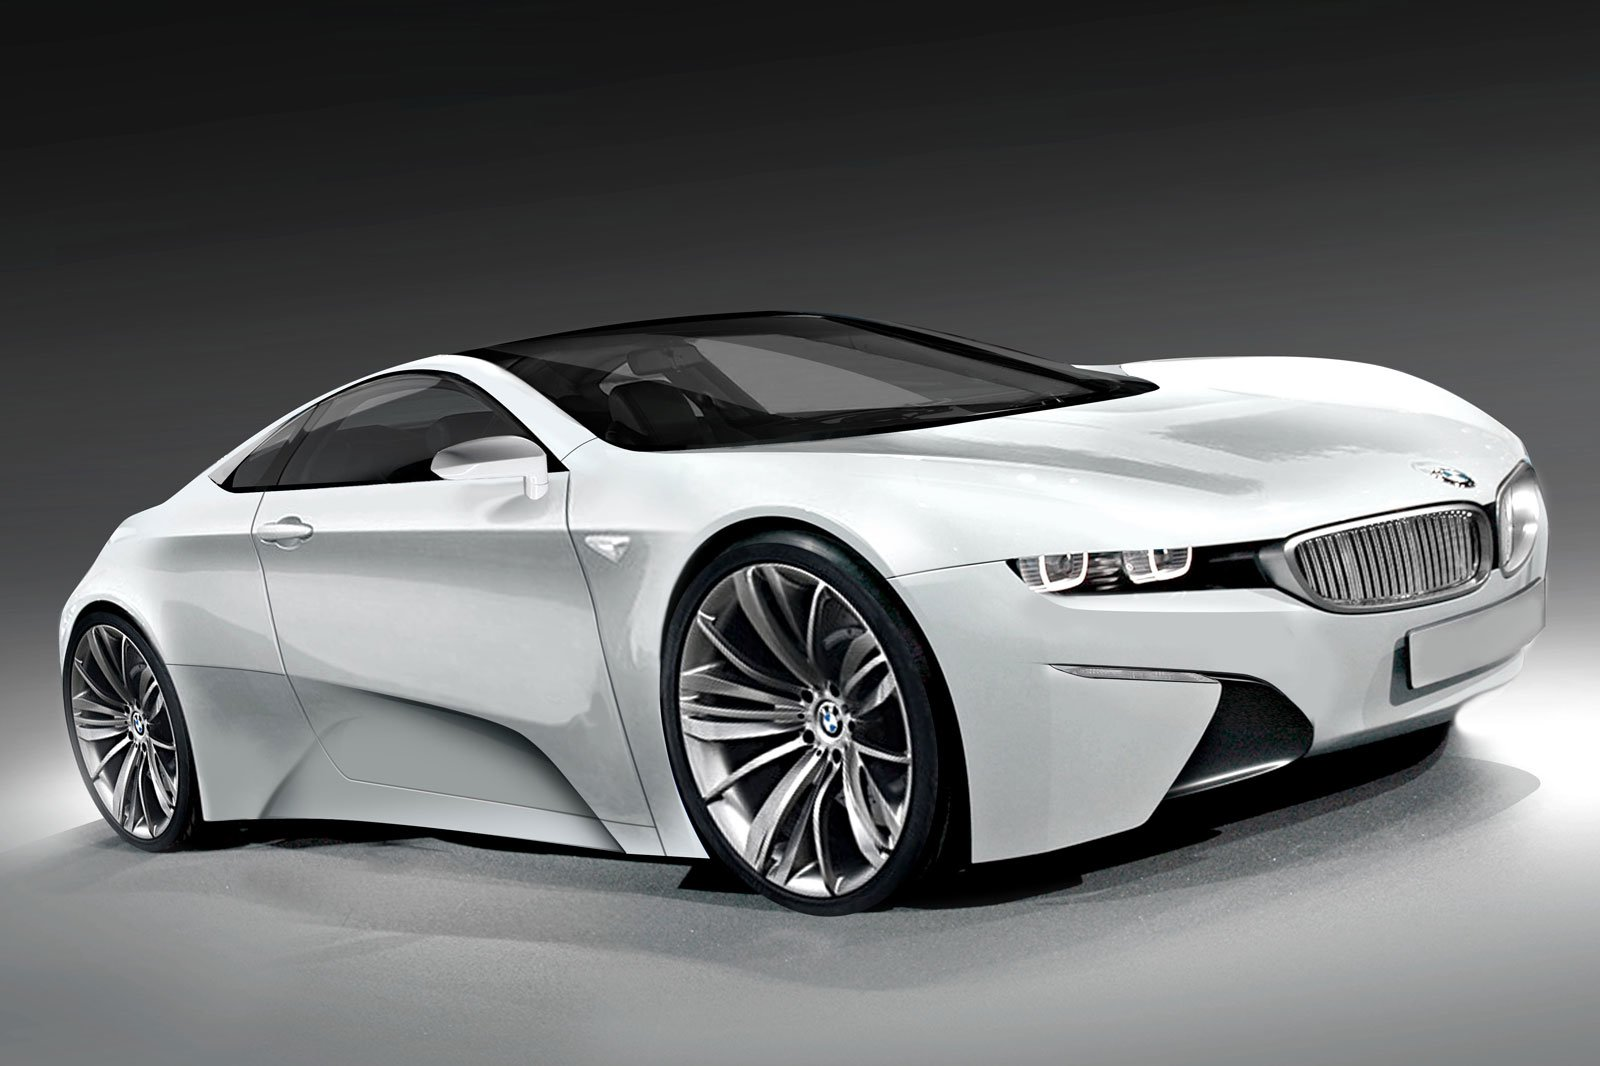 Latest Bmw Latest Luxury Car Models 2012 Myclipta Free Download